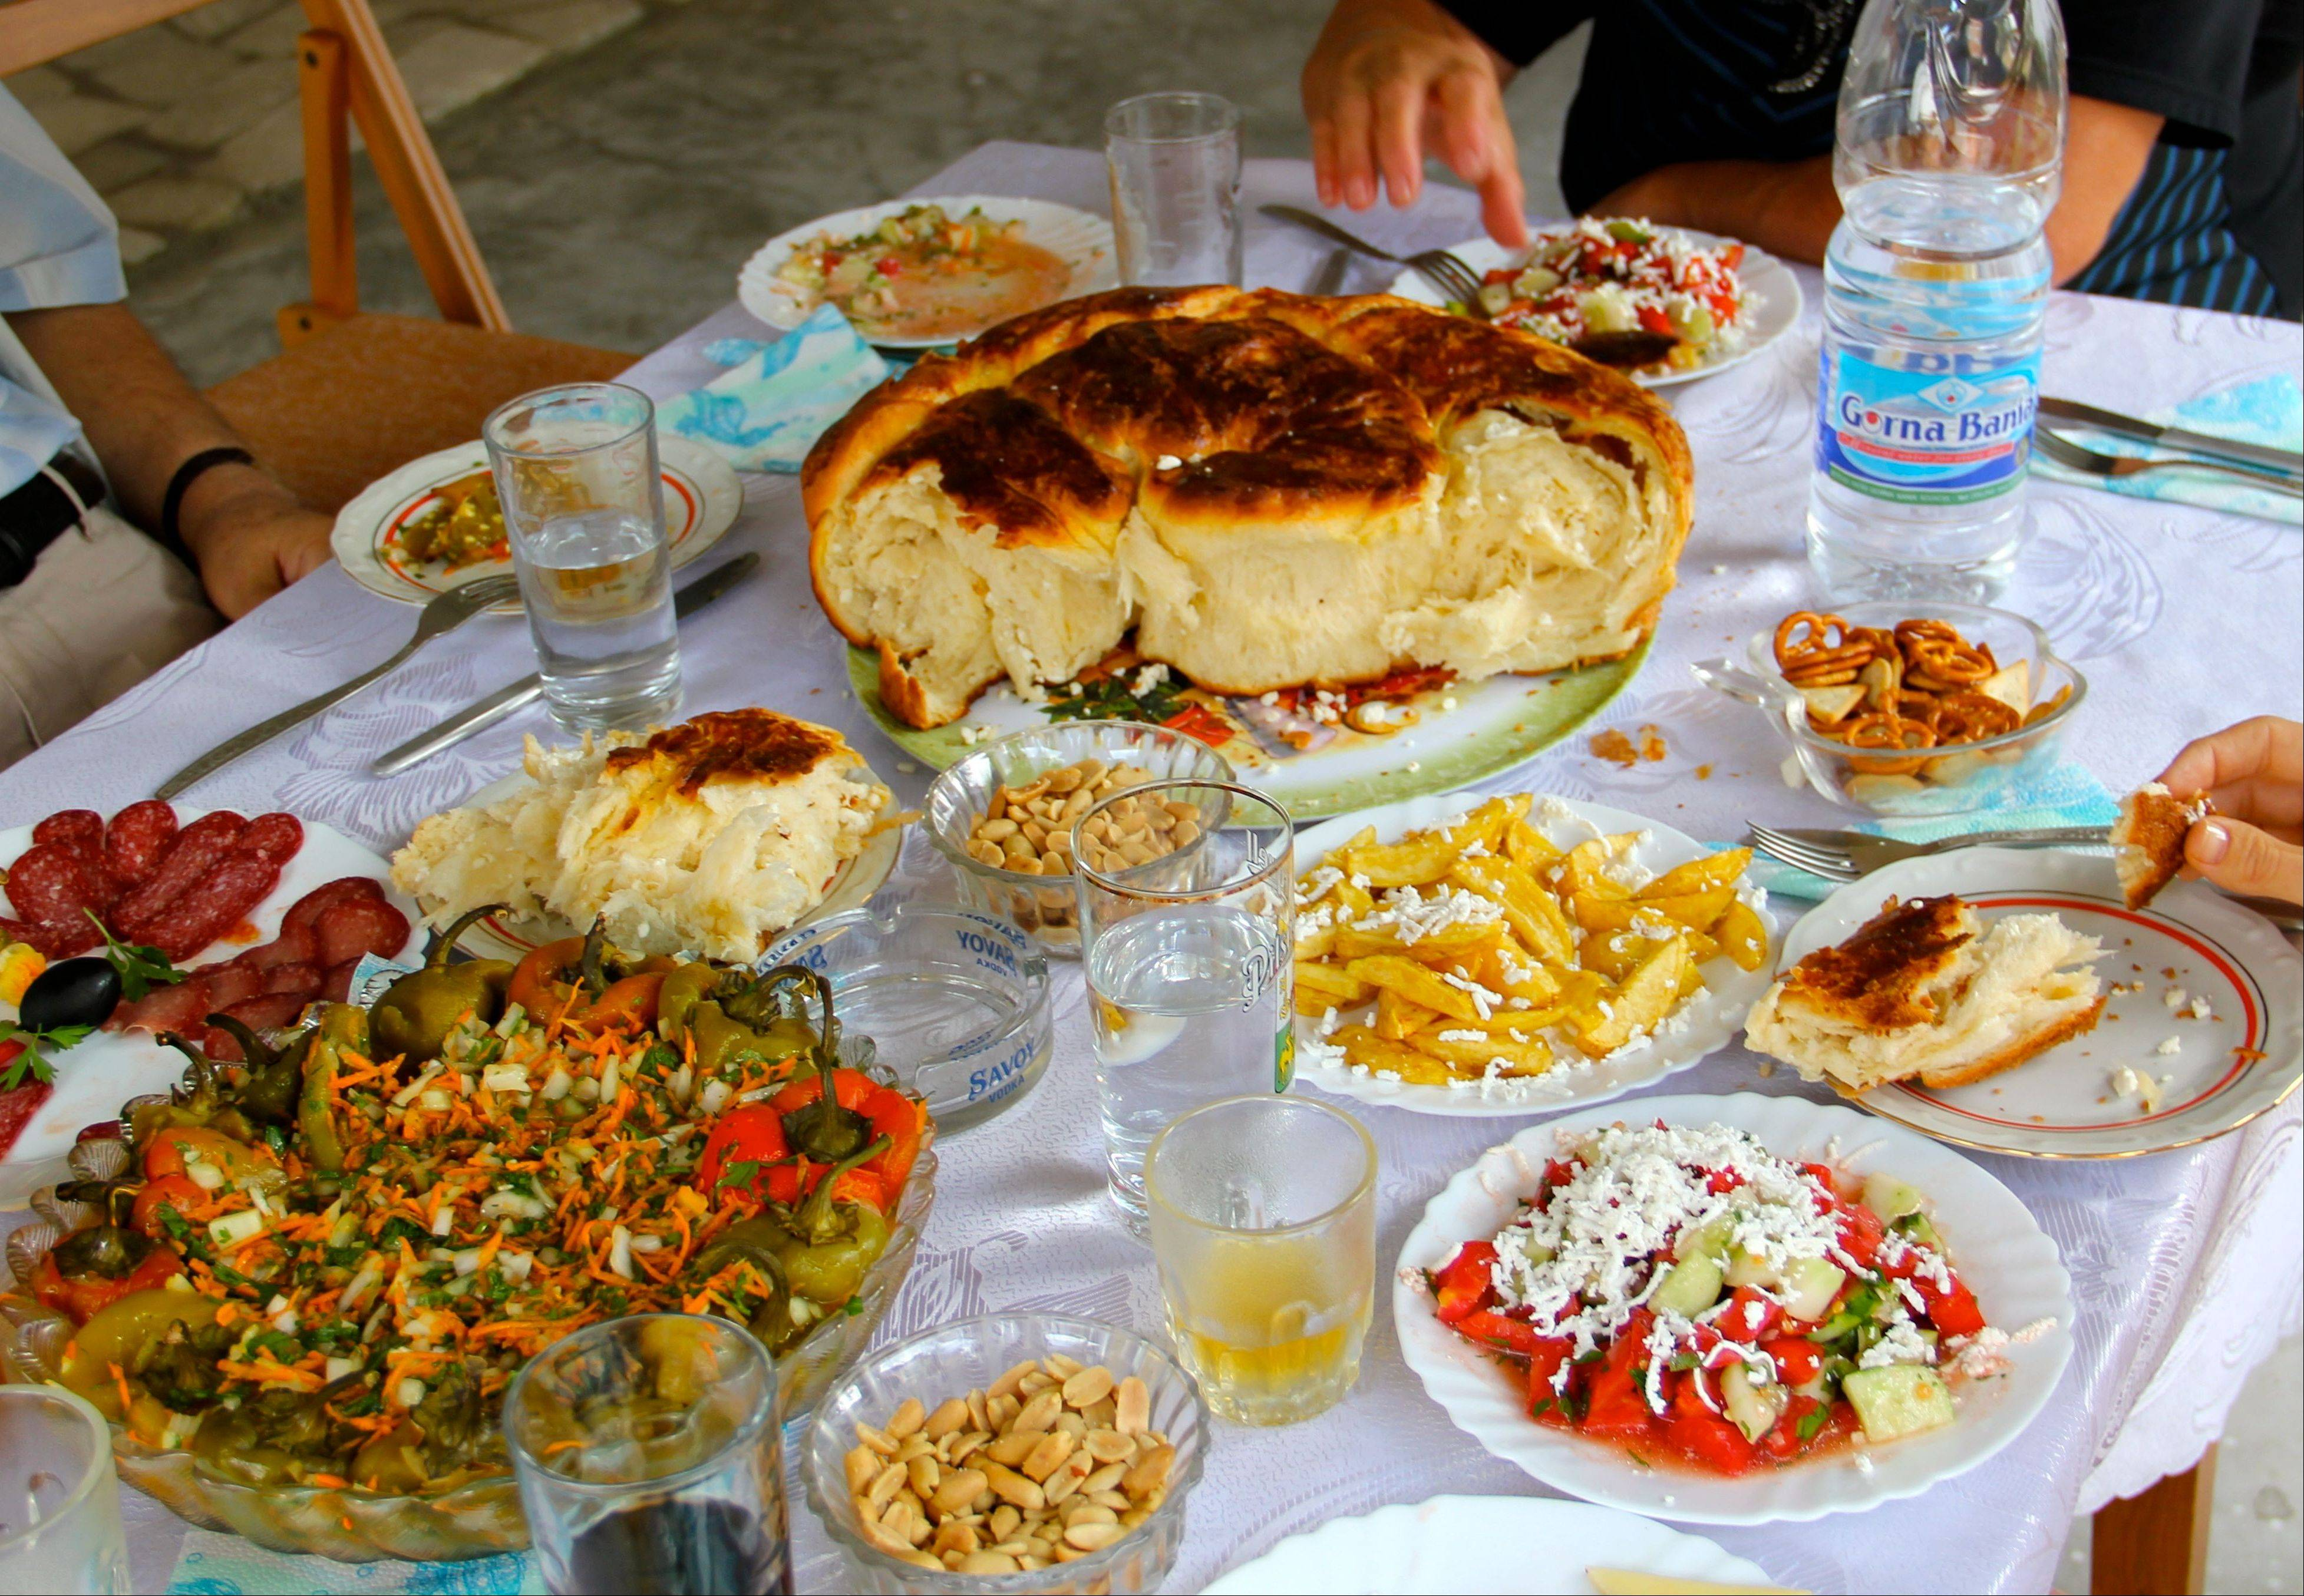 A traditional Bulgarian feast includes shopska salad, lower right, a salad of peppers and a bread with feta cheese called pogatcha.